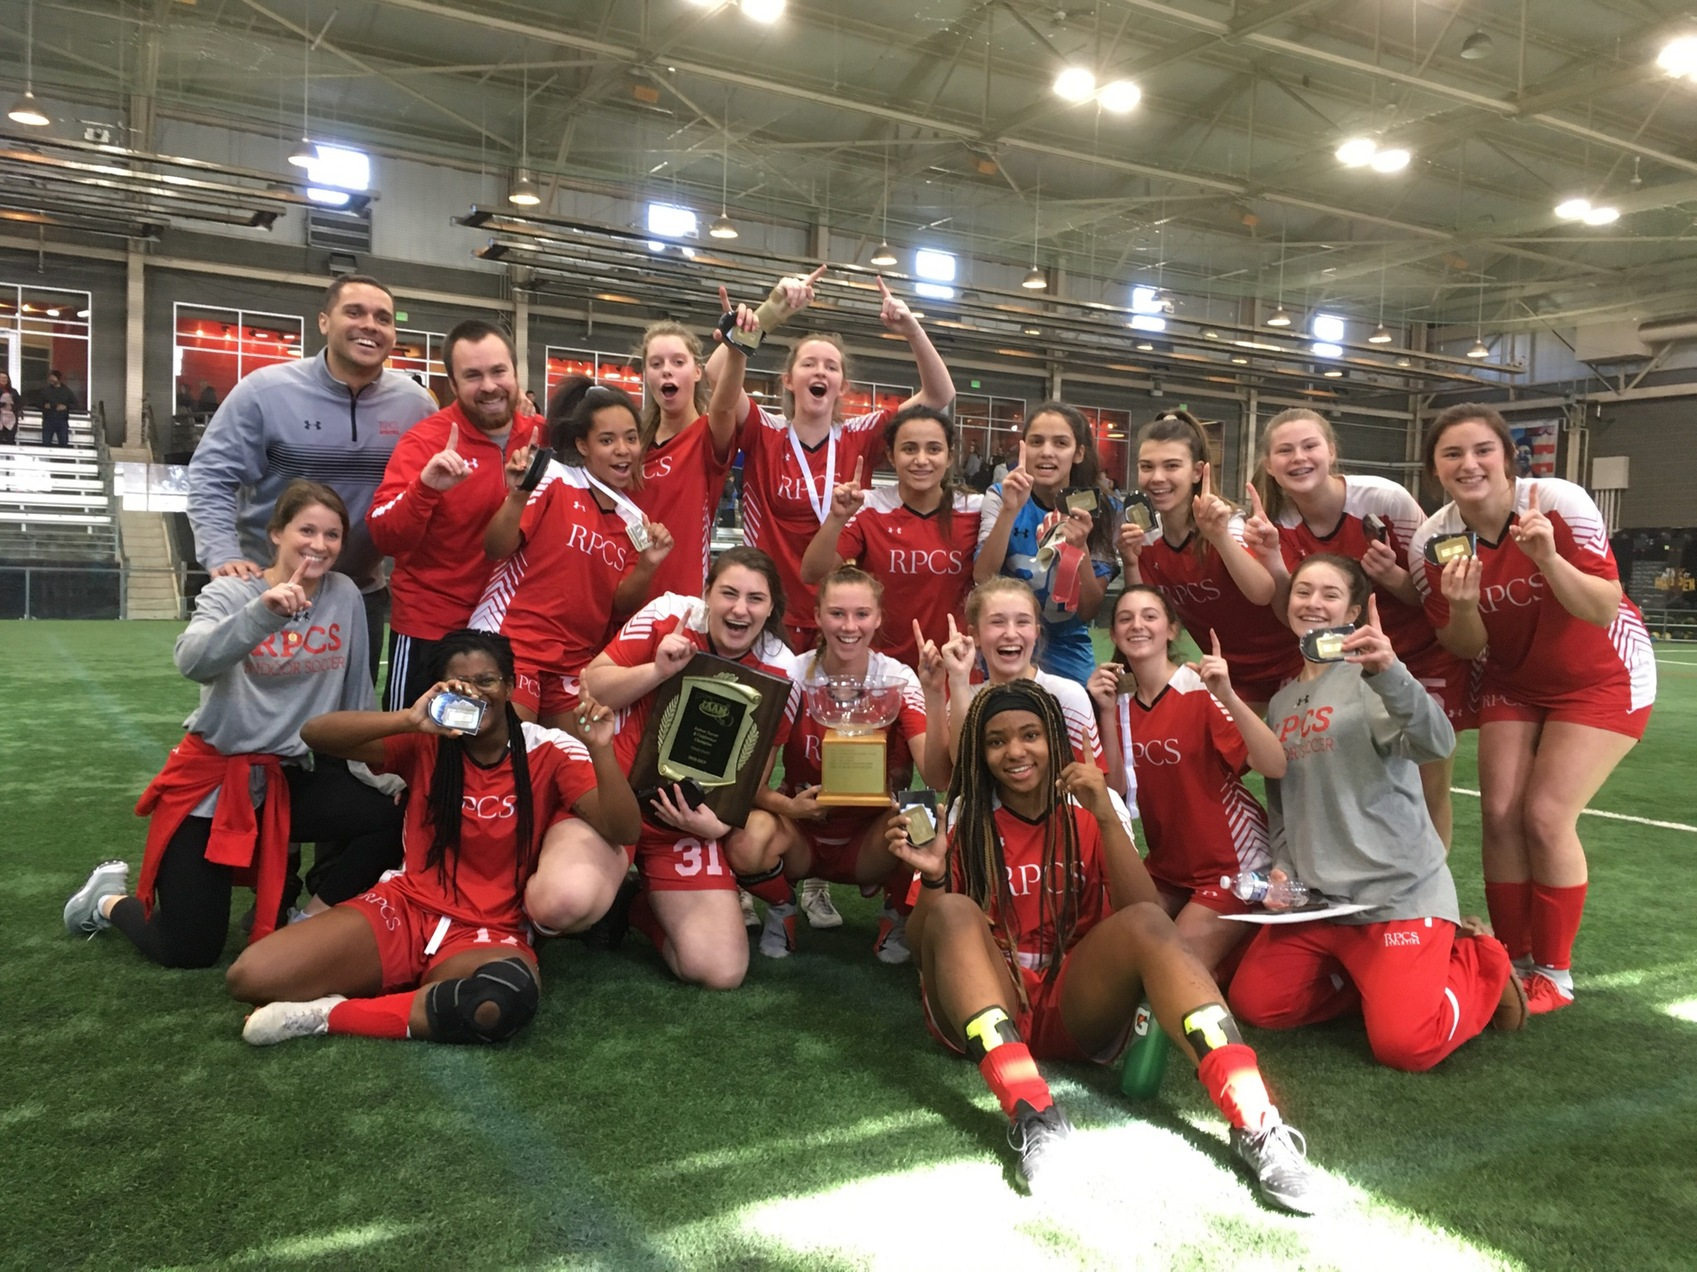 Miraculous rally in final minute propels Roland Park to B Conference crown